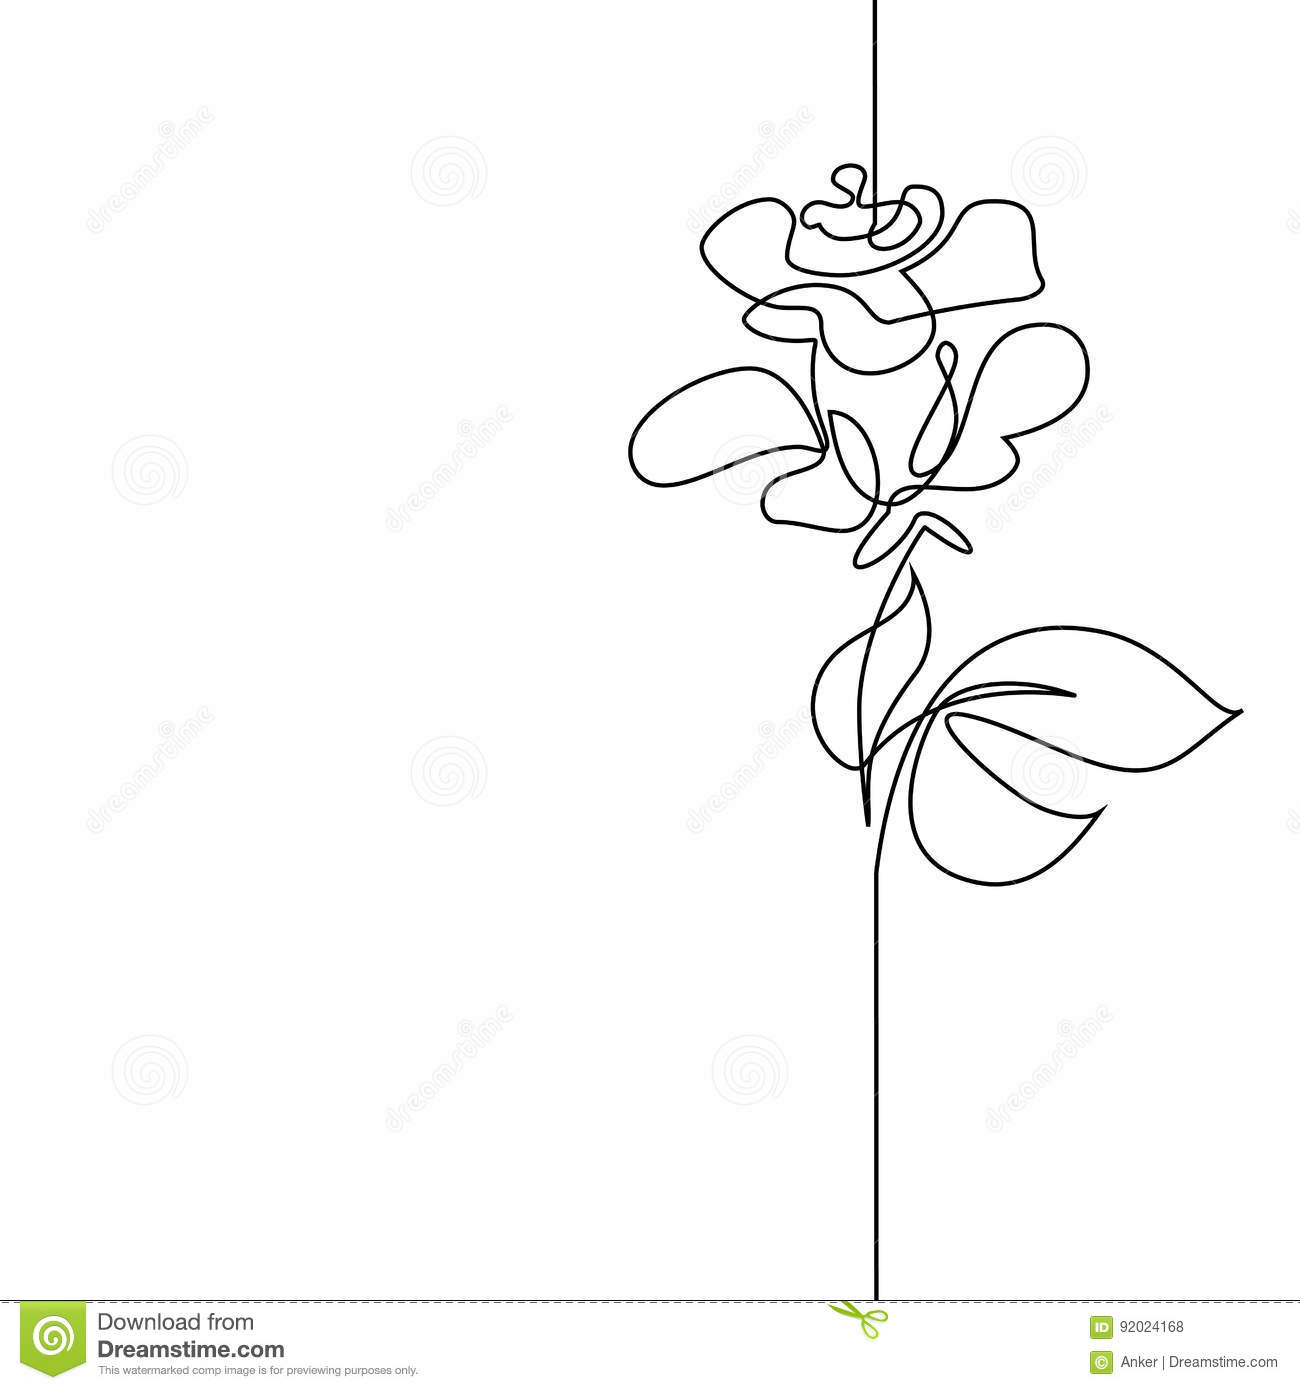 Continuous Line Drawing Of A Flower : Continuous line drawing of beautiful flower stock vector